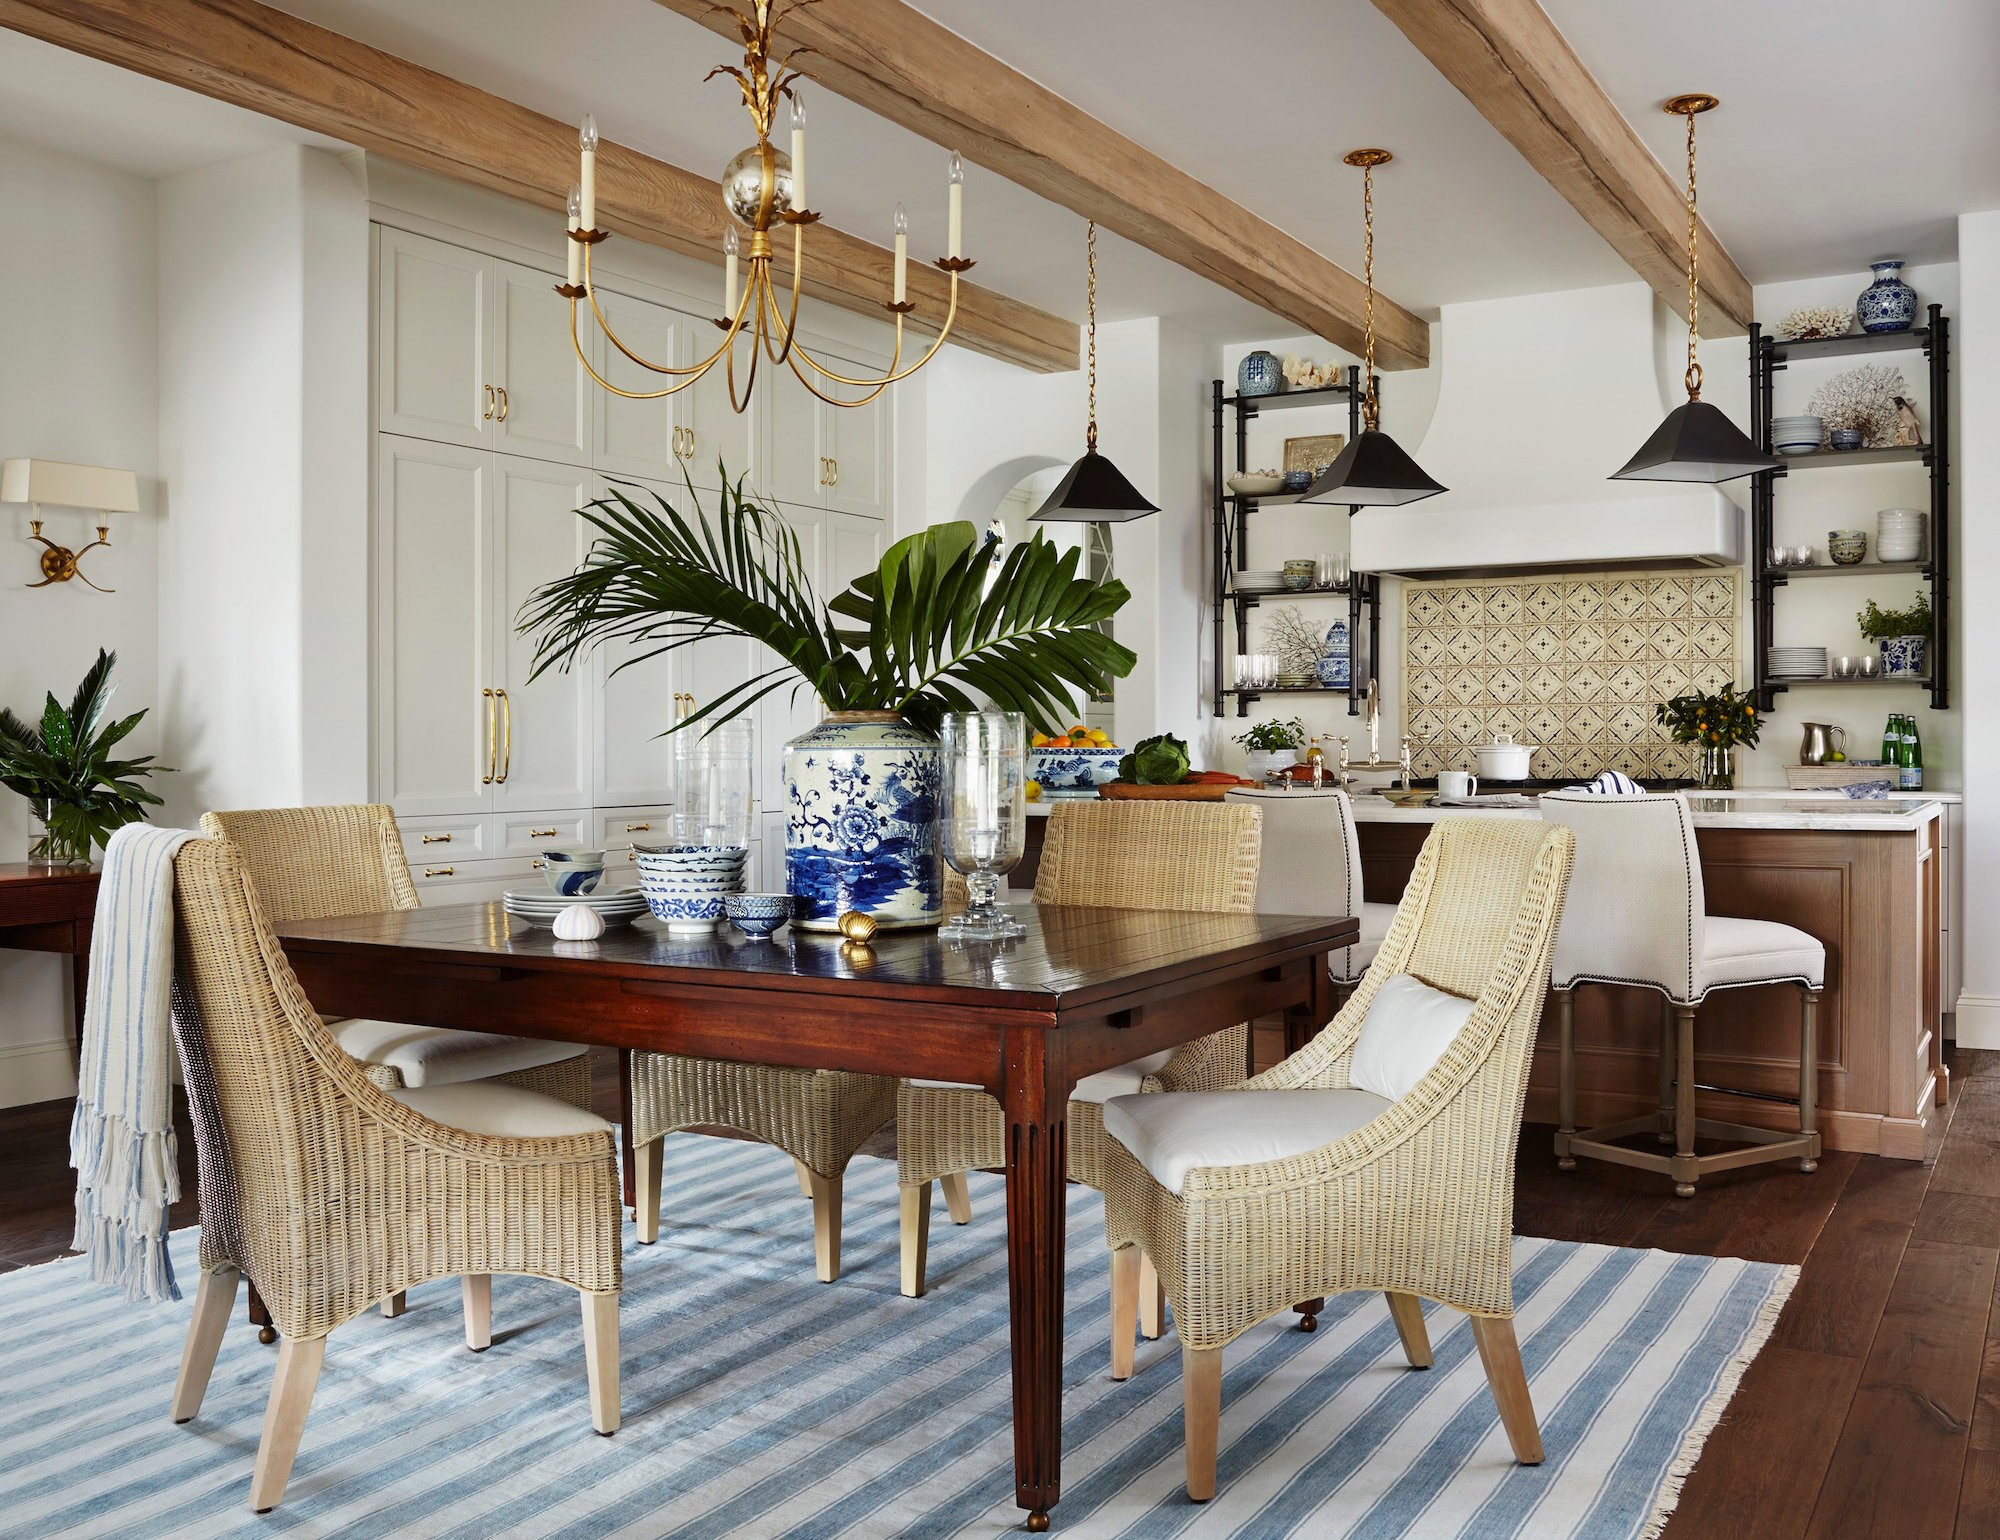 blue and white kitchen by Summer Thornton